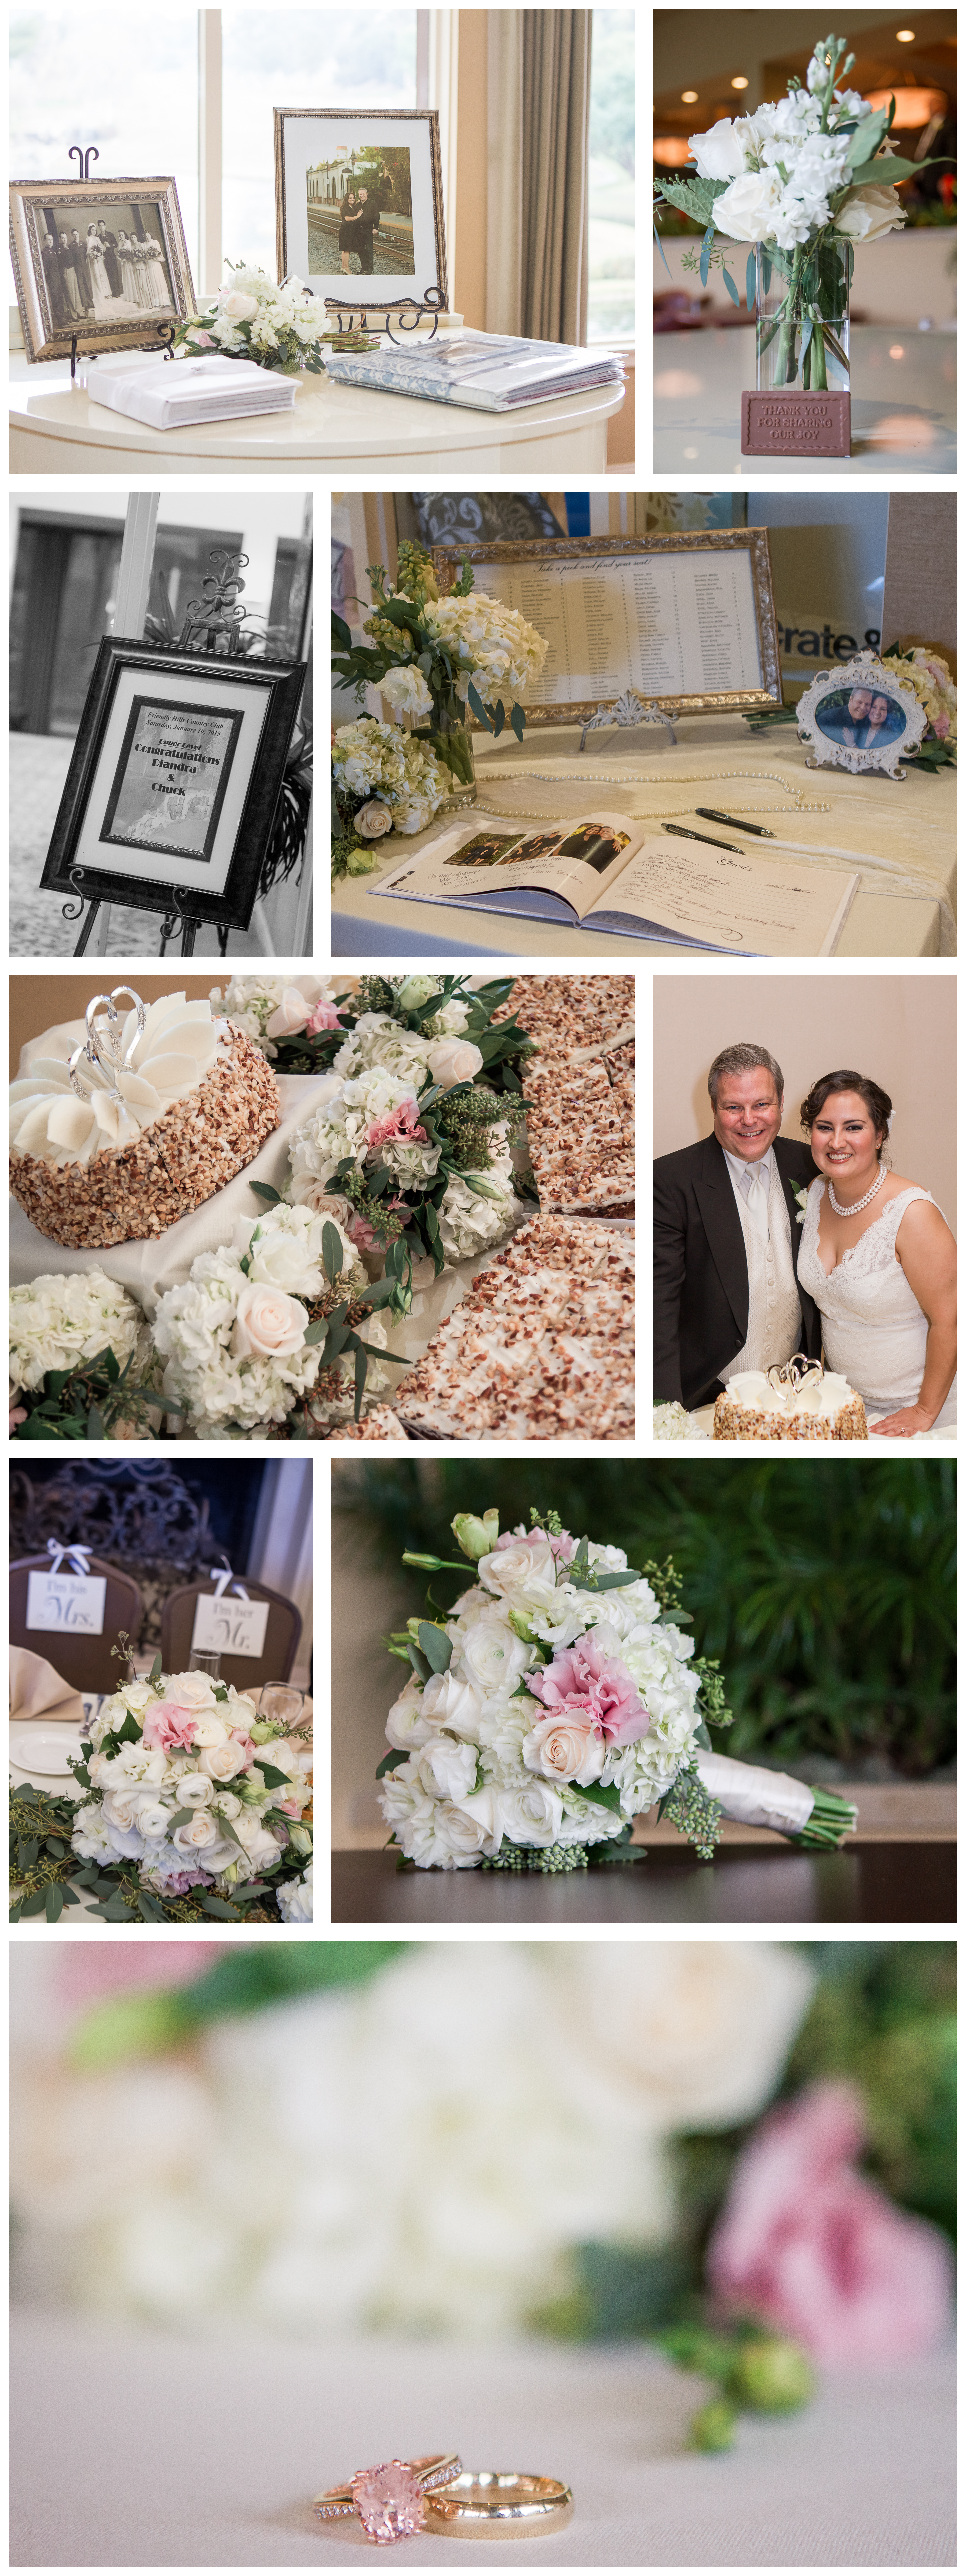 Causey wedding blog collage 4